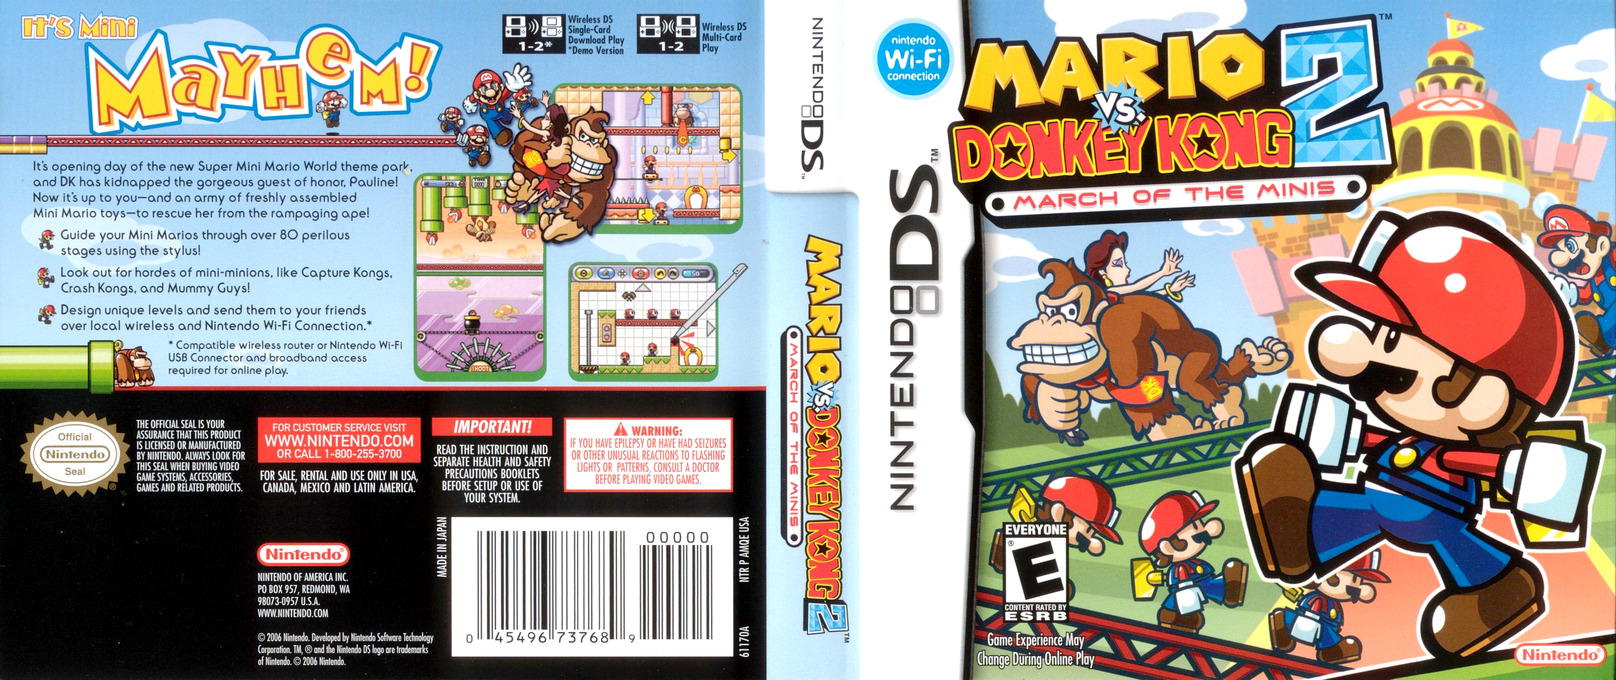 Mario vs. Donkey Kong 2 - March of the Minis DS coverfullHQ (AMQE)